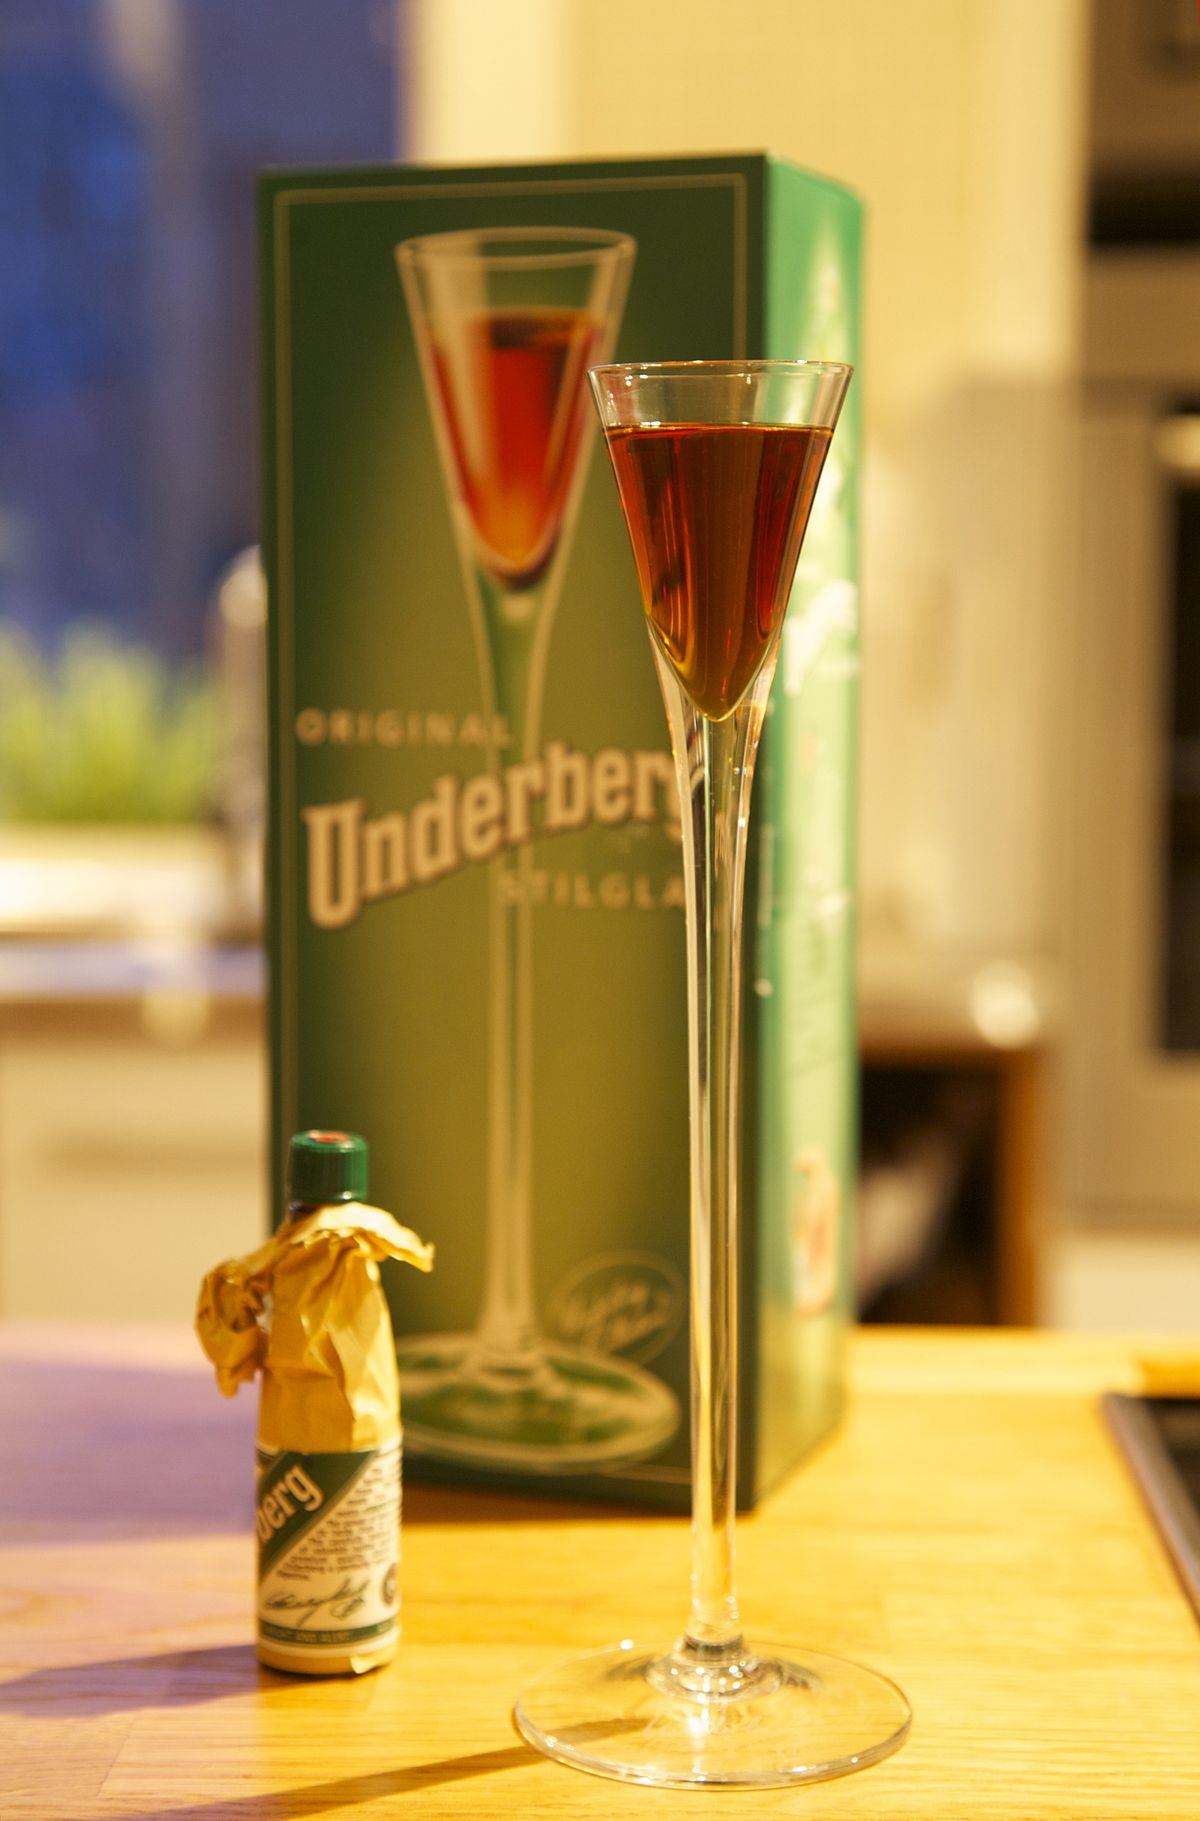 underberg drink glass german bottle drinks cocktails bitters digestive wikipedia germany liquor herbal drunk alcoholic b2 today digestion